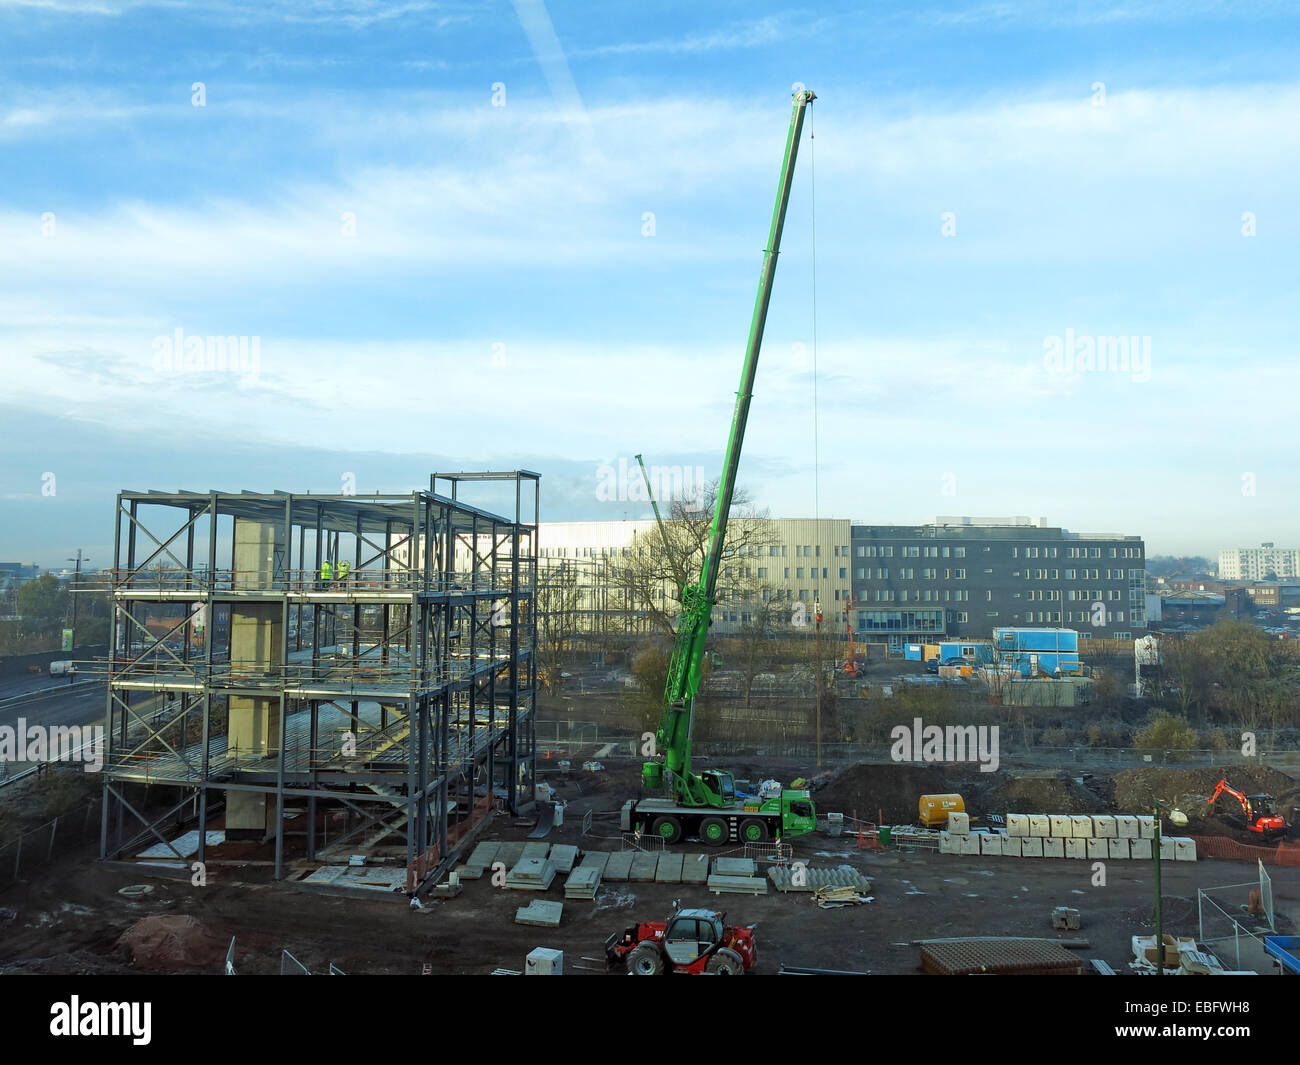 New head office being built in Walsall Gigaport, West